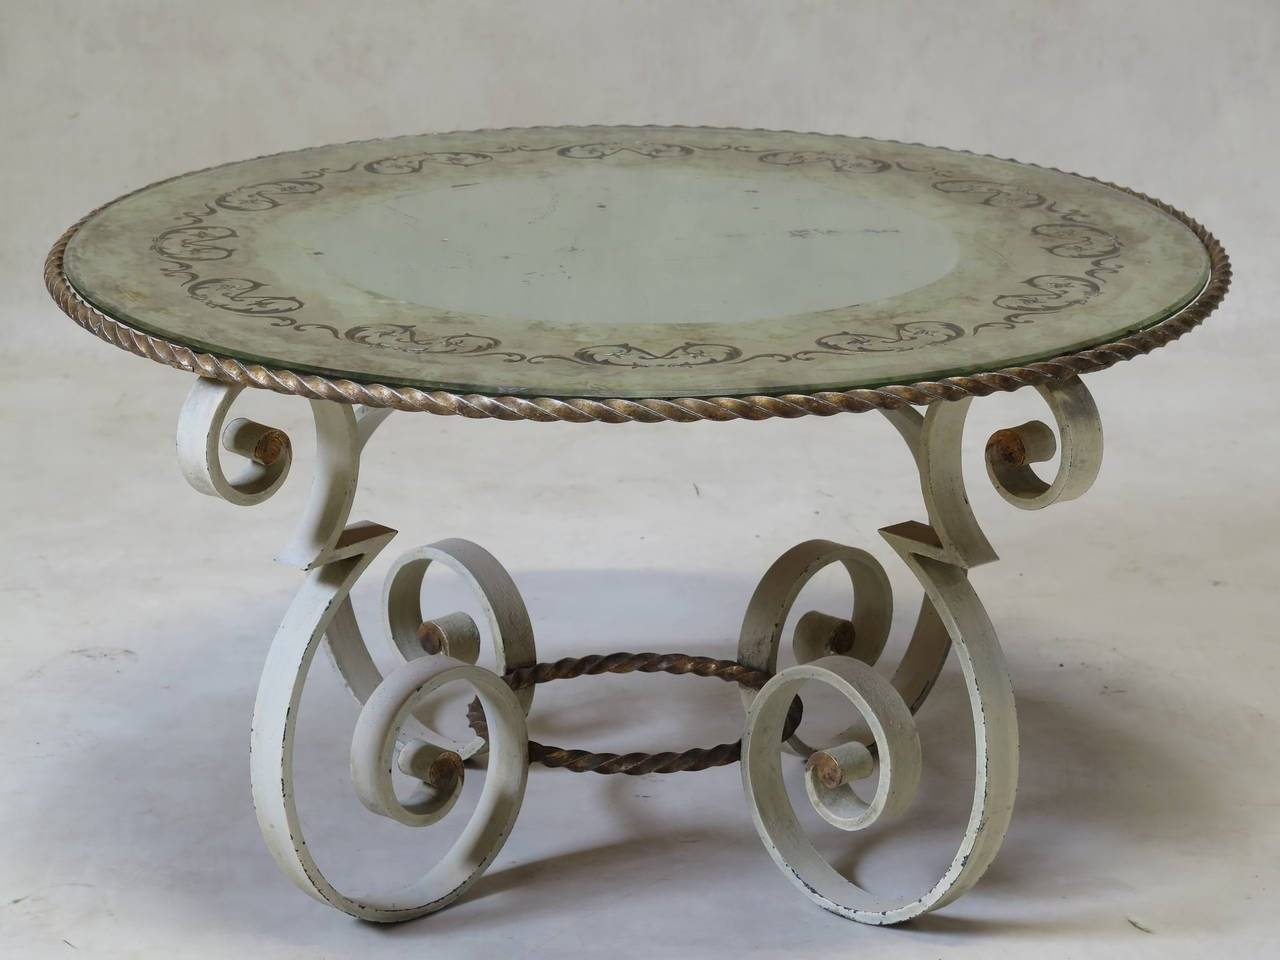 Wrought Iron Coffee Table With Eglomisé Mirror Top, France 1940S throughout Wrought Iron Coffee Tables (Image 24 of 30)